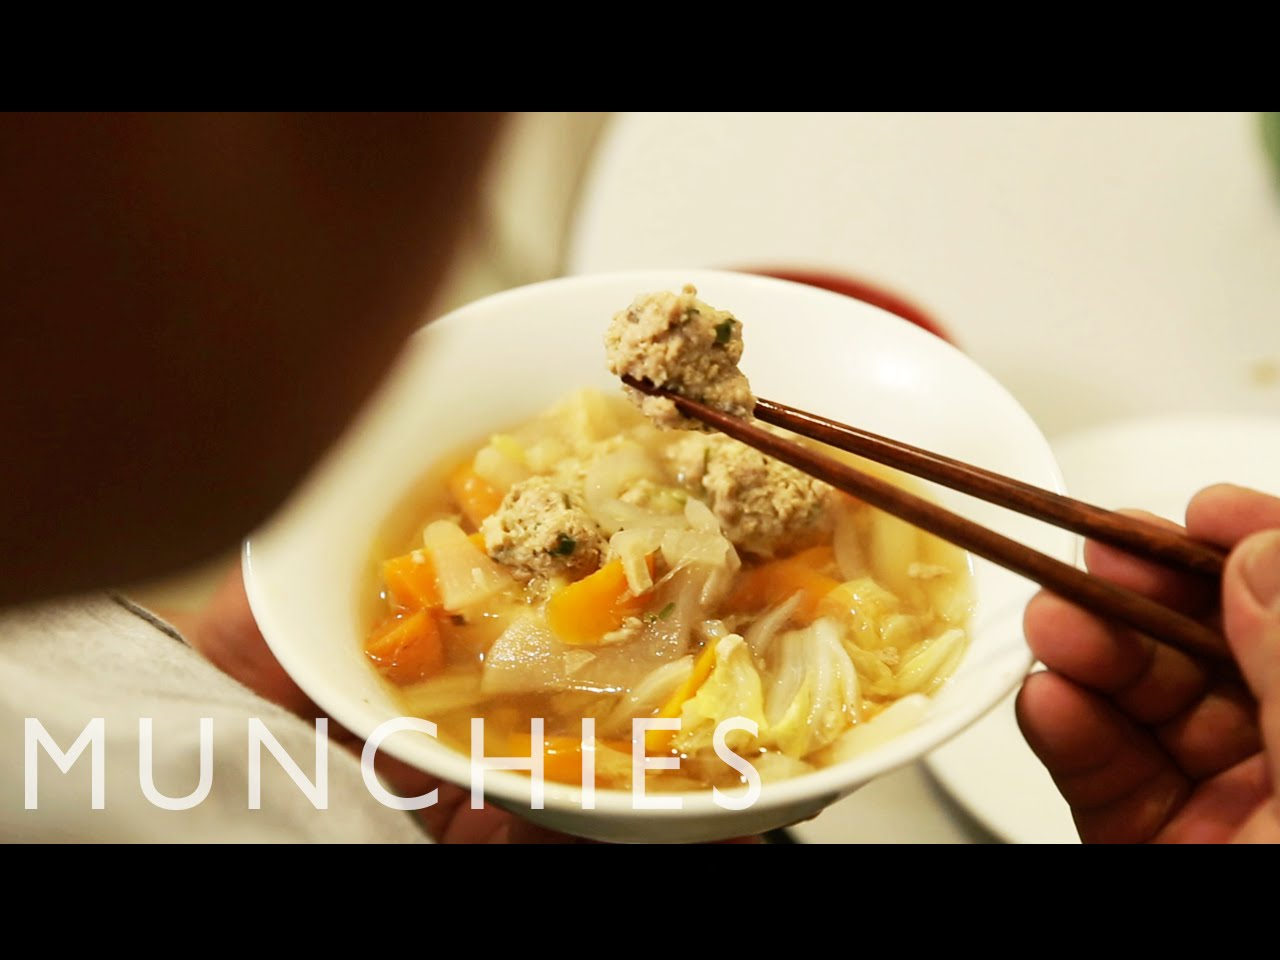 Chanko Nabe - The Sumo Stew - All Things Gym